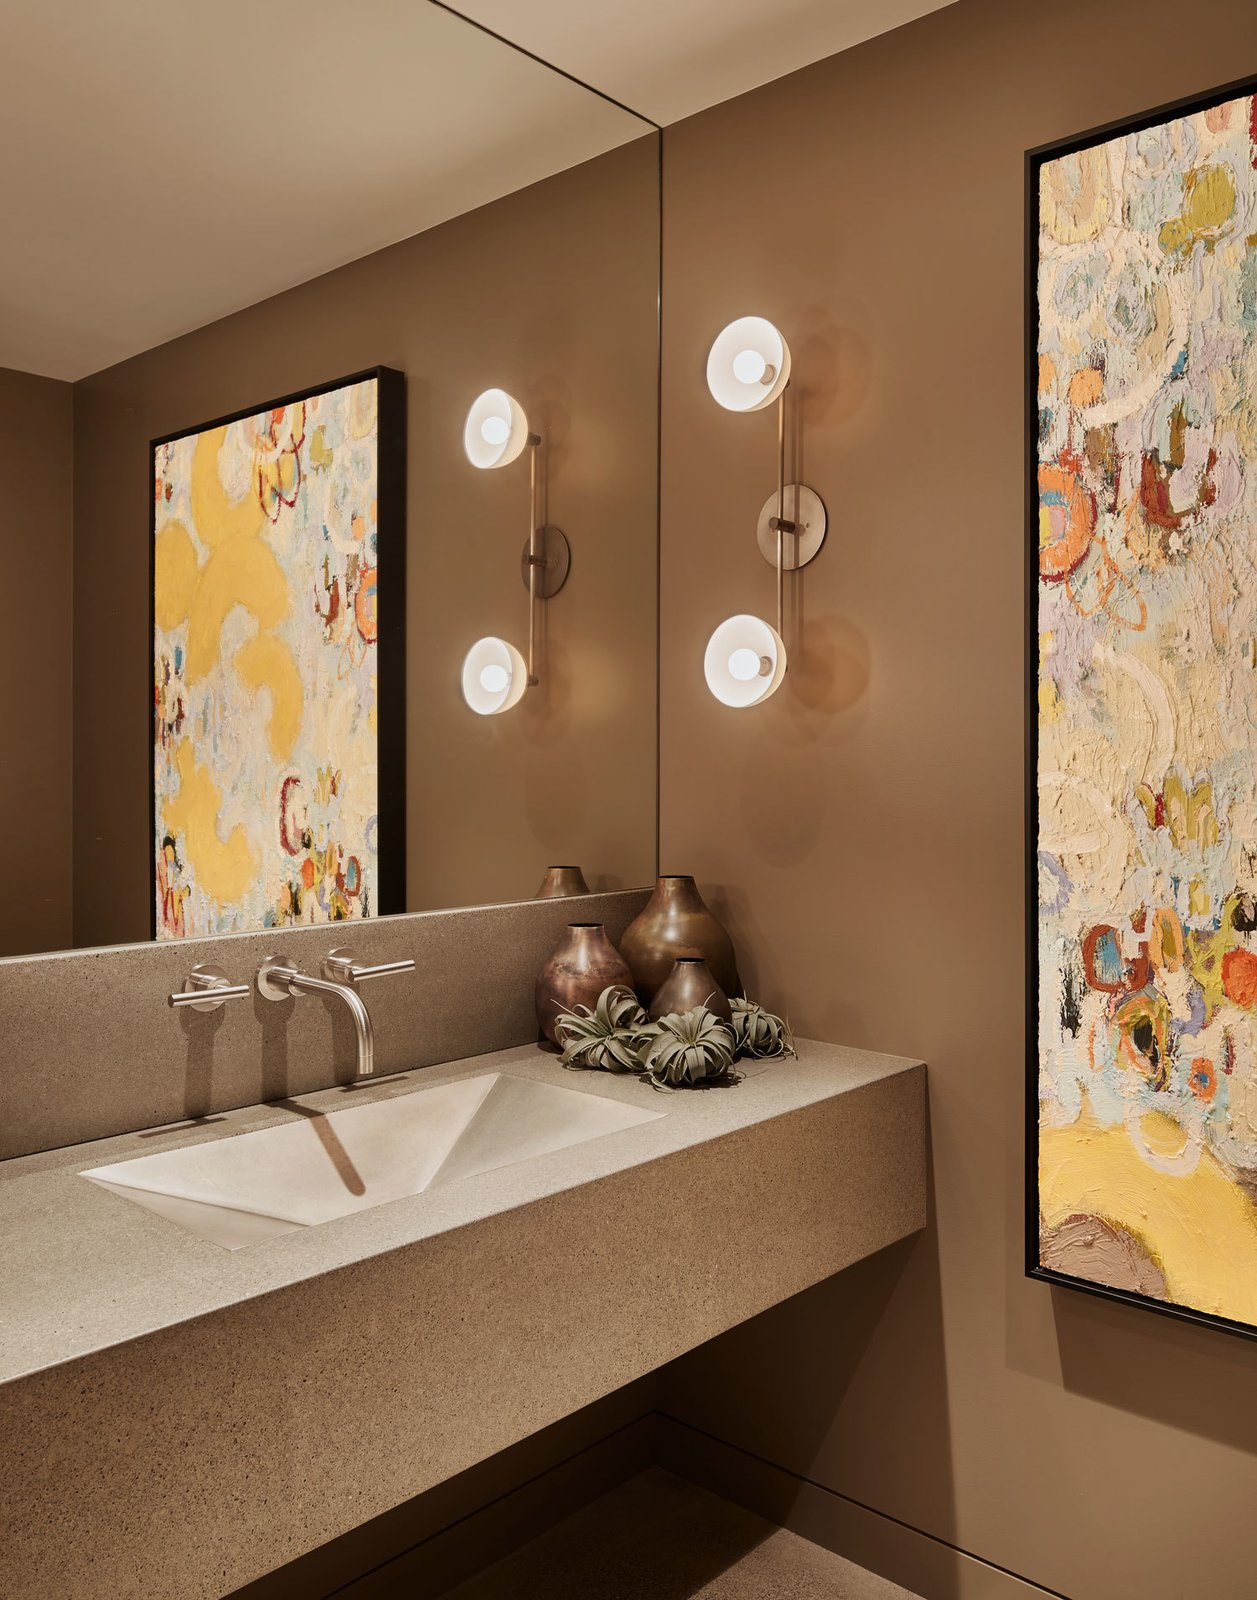 Bath Room and Wall Lighting The powder room   Union Bay Residence by NB Design Group